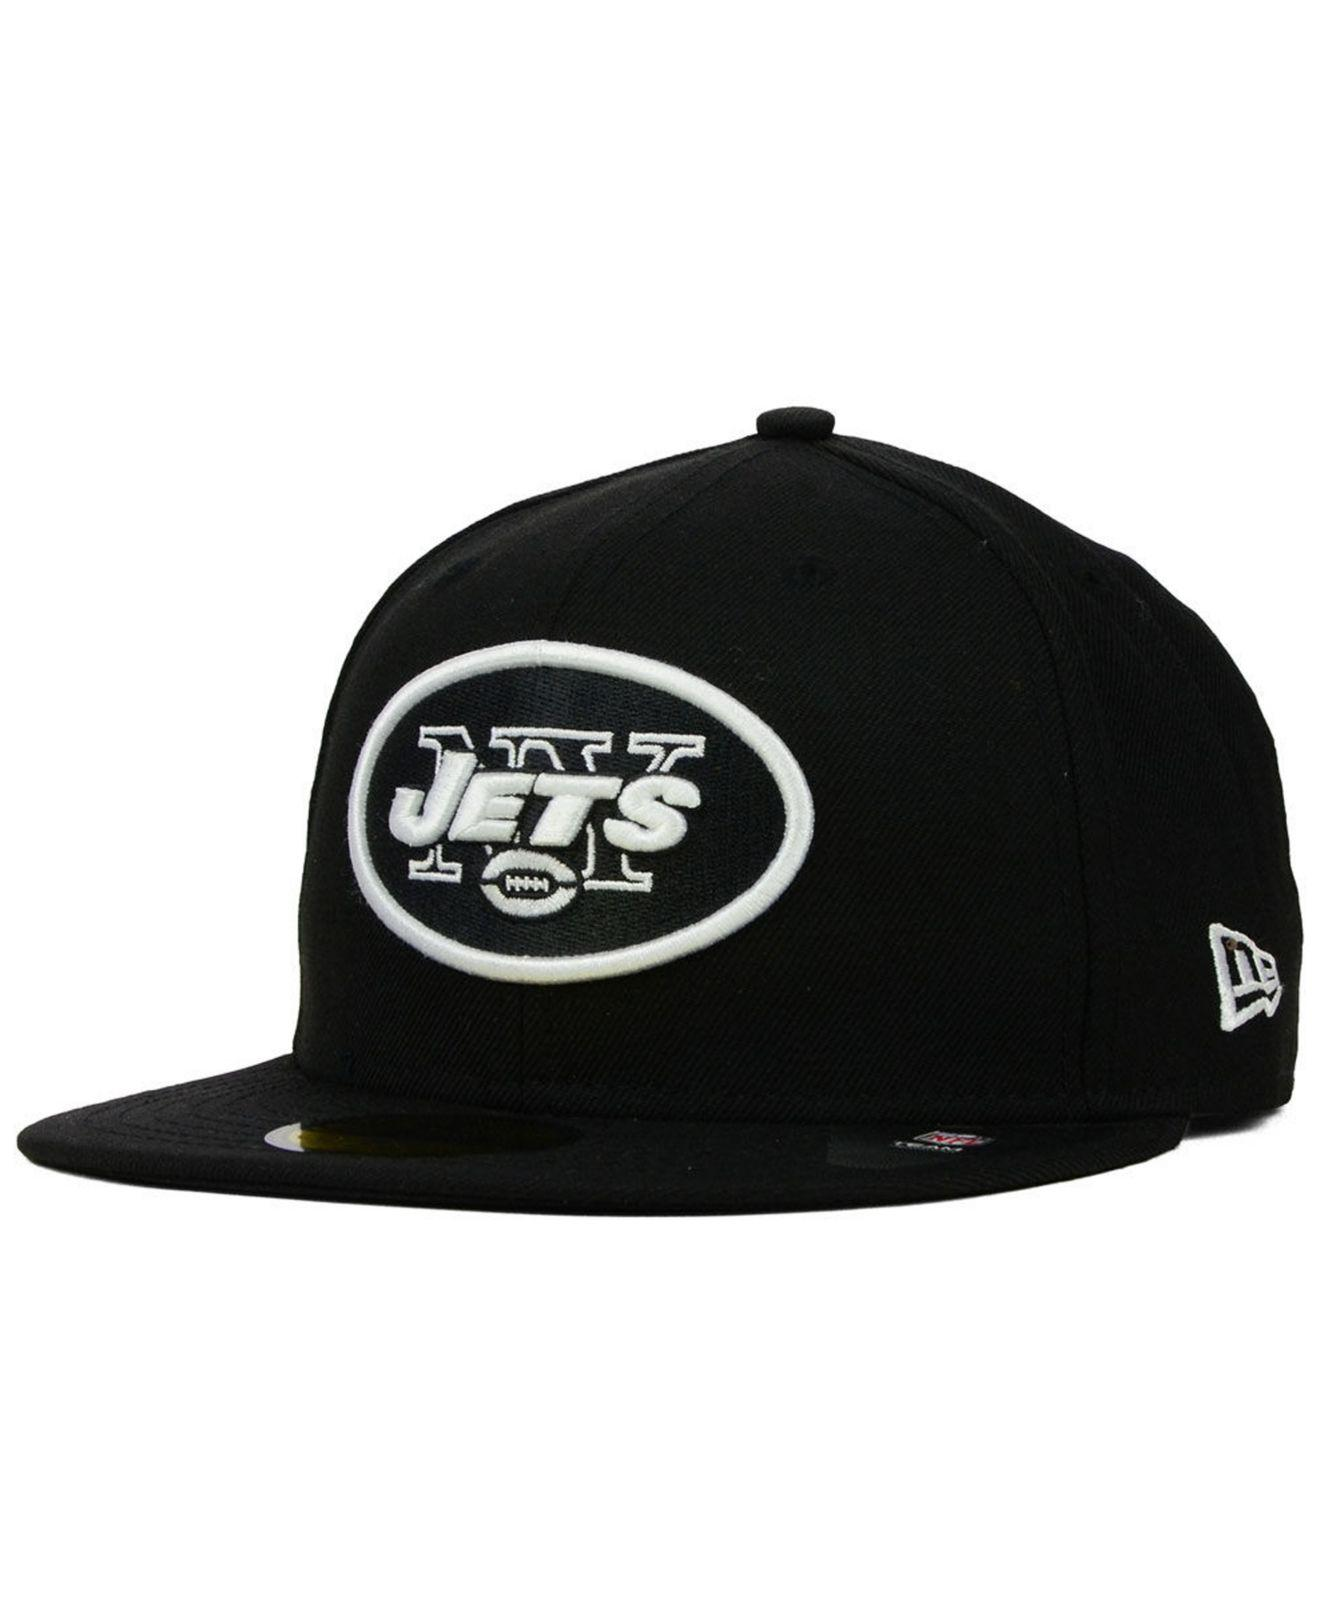 ... coupon code for ktz new york jets black and white 59fifty fitted cap  for men lyst ... f05ee8442